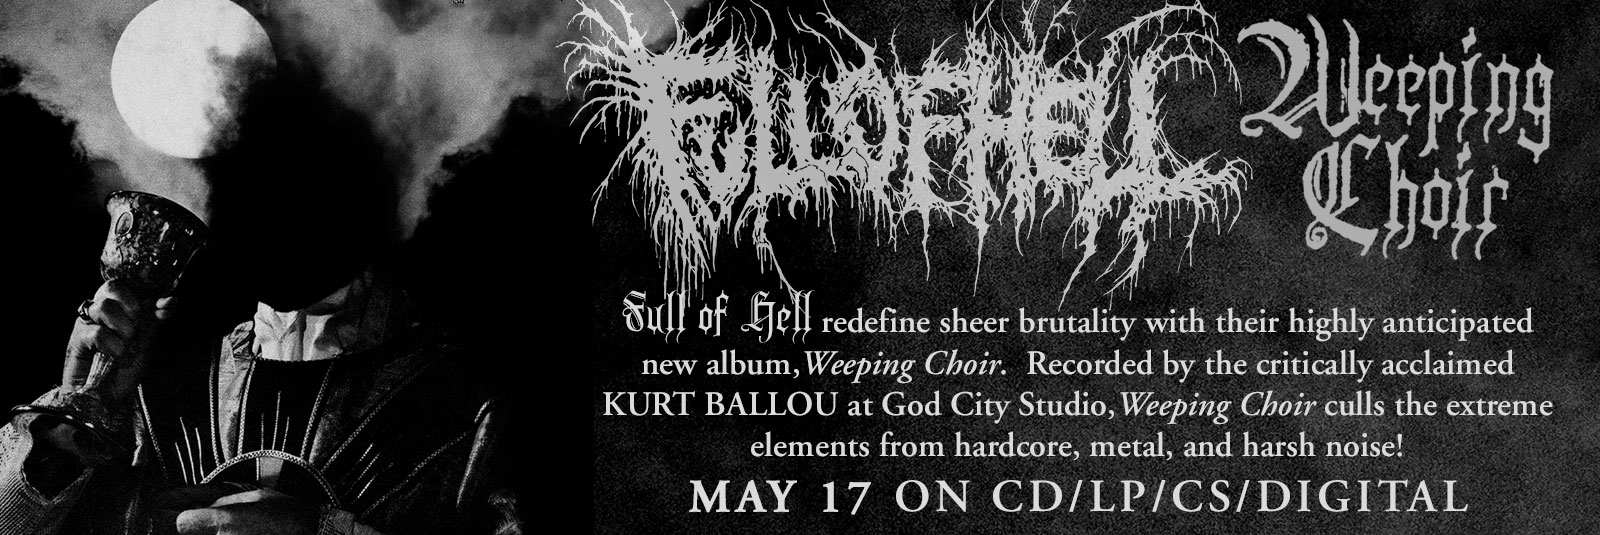 full-of-hell-weeping-choir-grindcore-extreme-metal-may-17